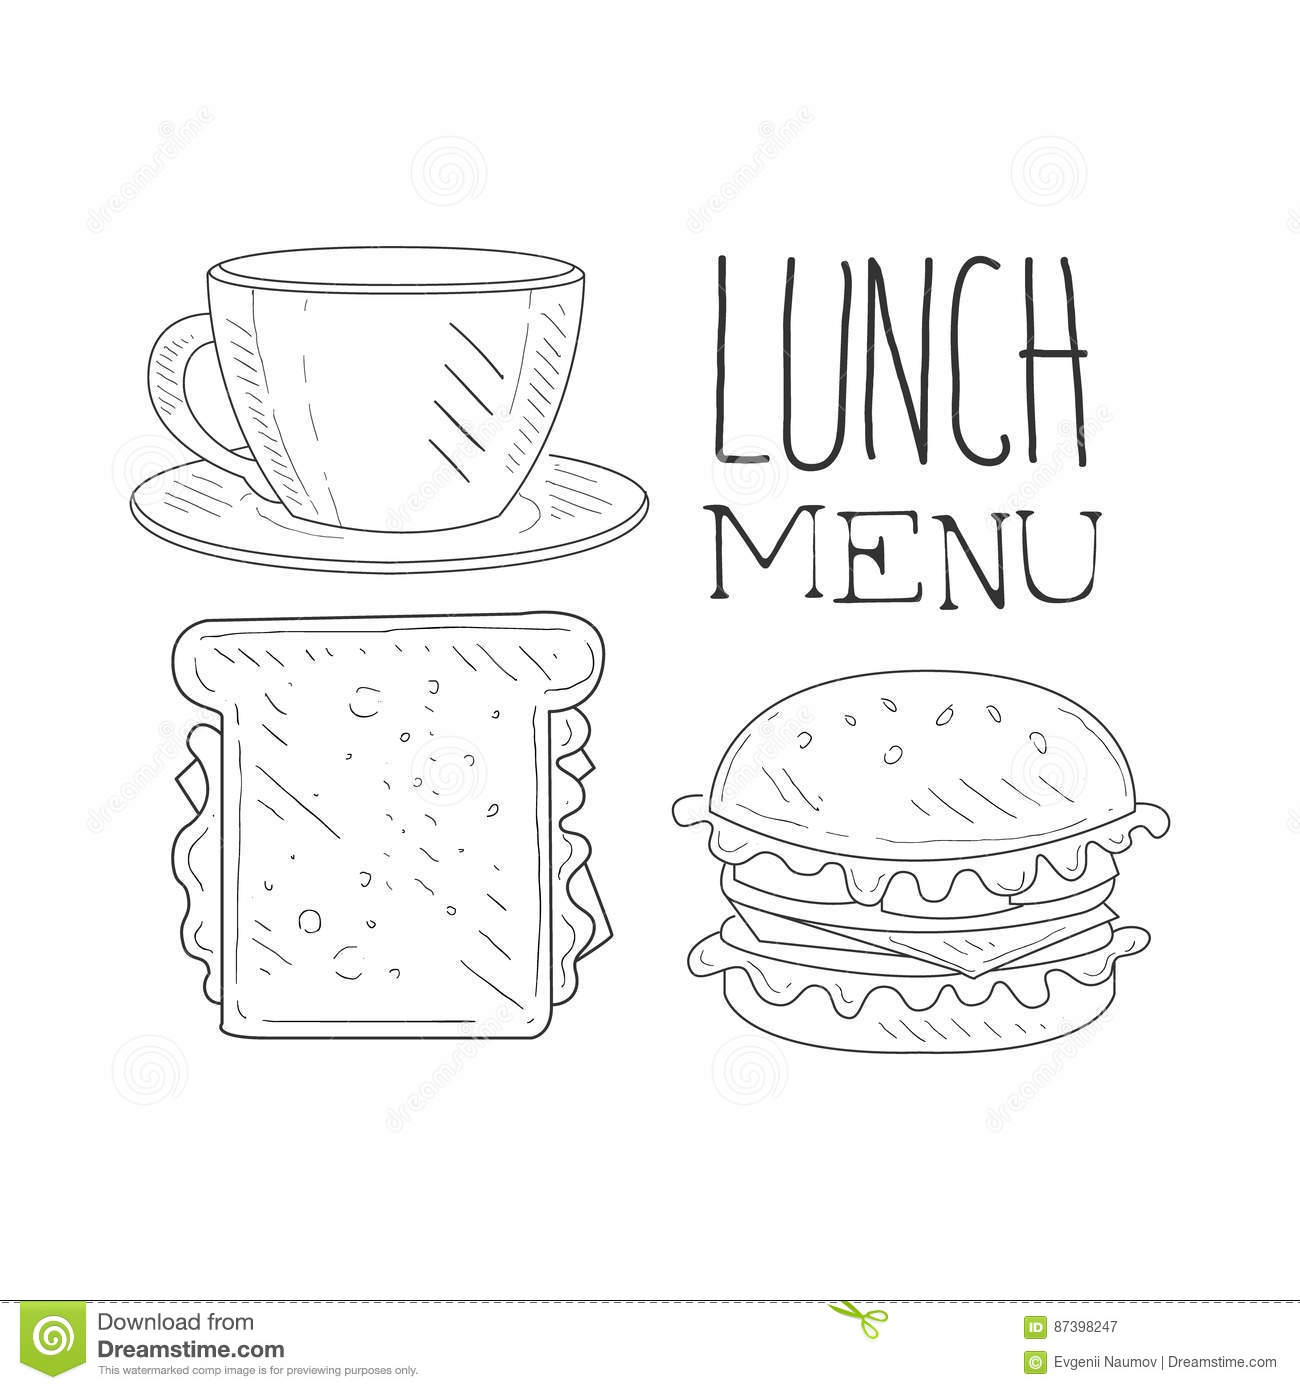 Cafe Lunch Menu Promo Sign In Sketch Style With Sandwich, Burger And ...